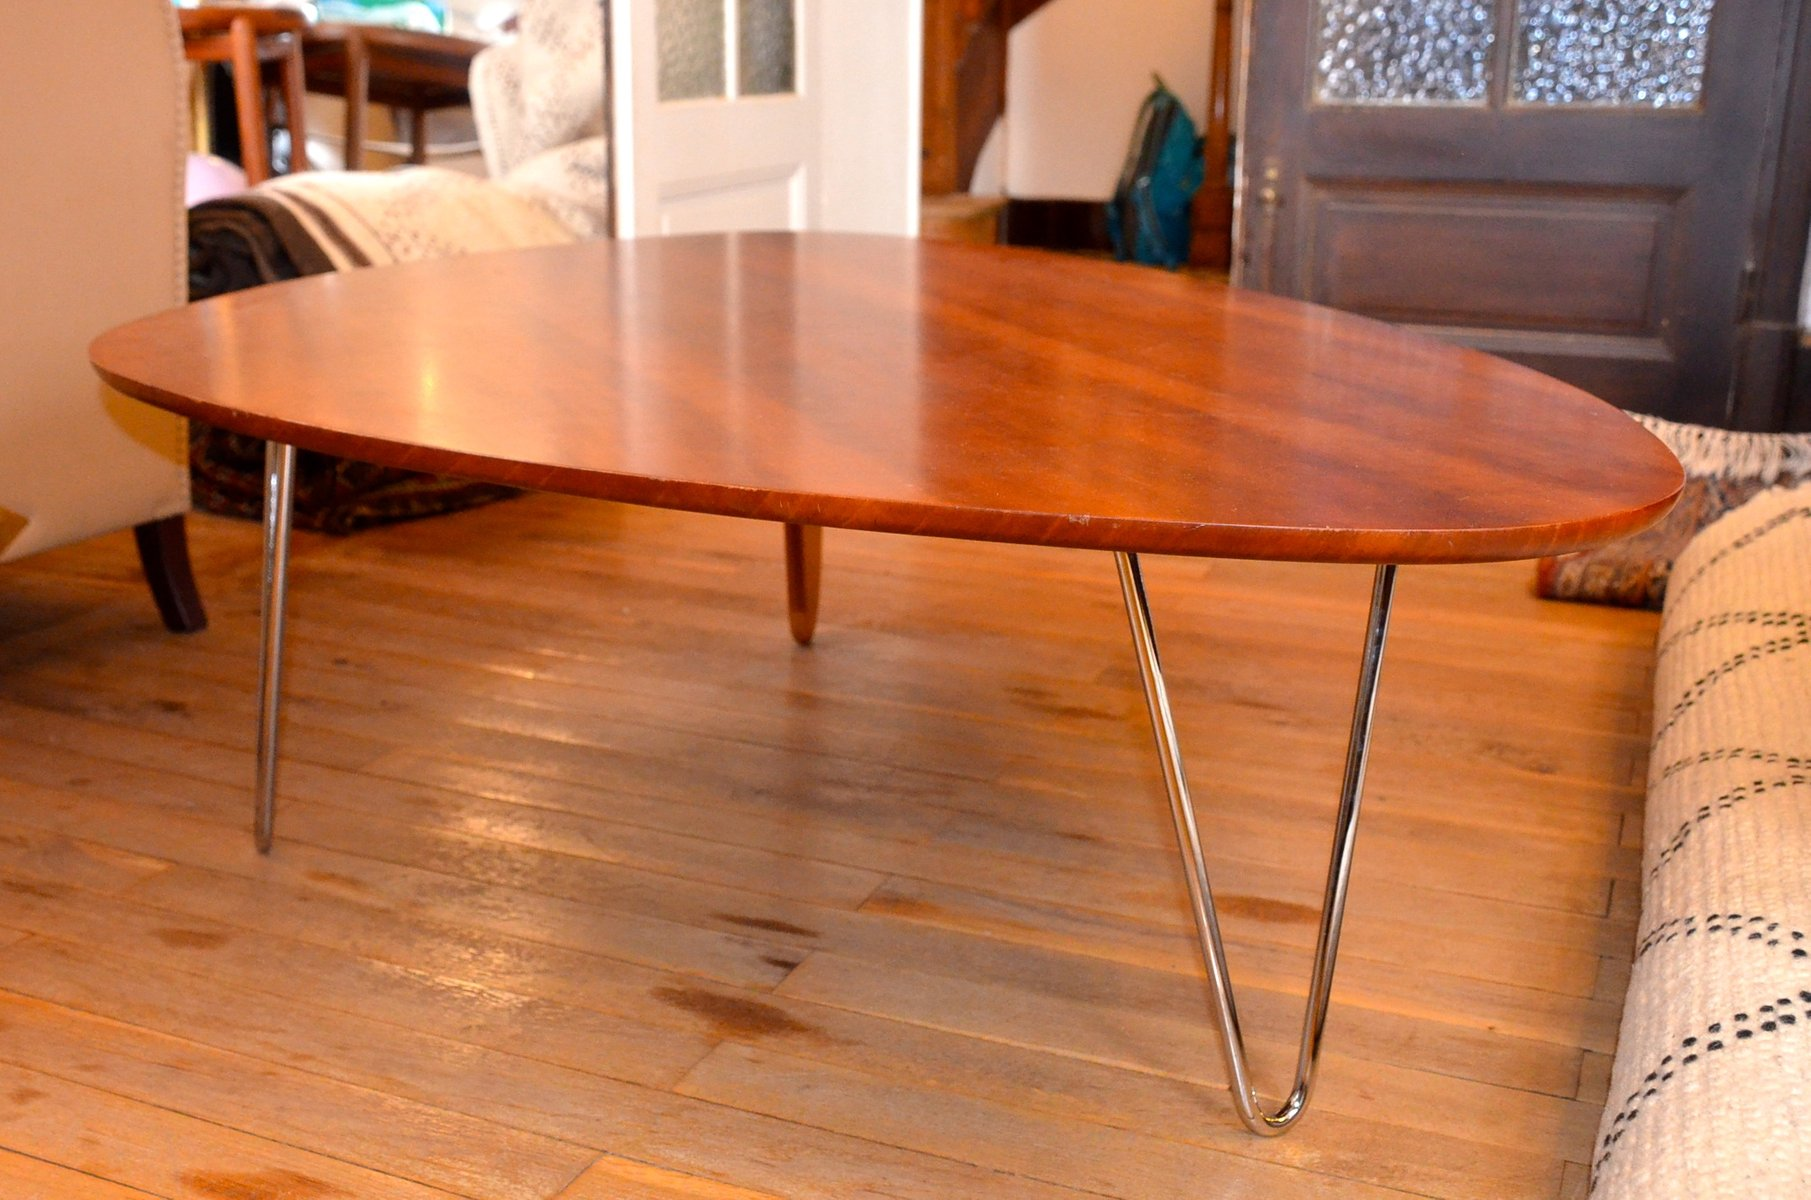 Vintage Rudder Coffee Table by Isamu Noguchi for Herman Miller for